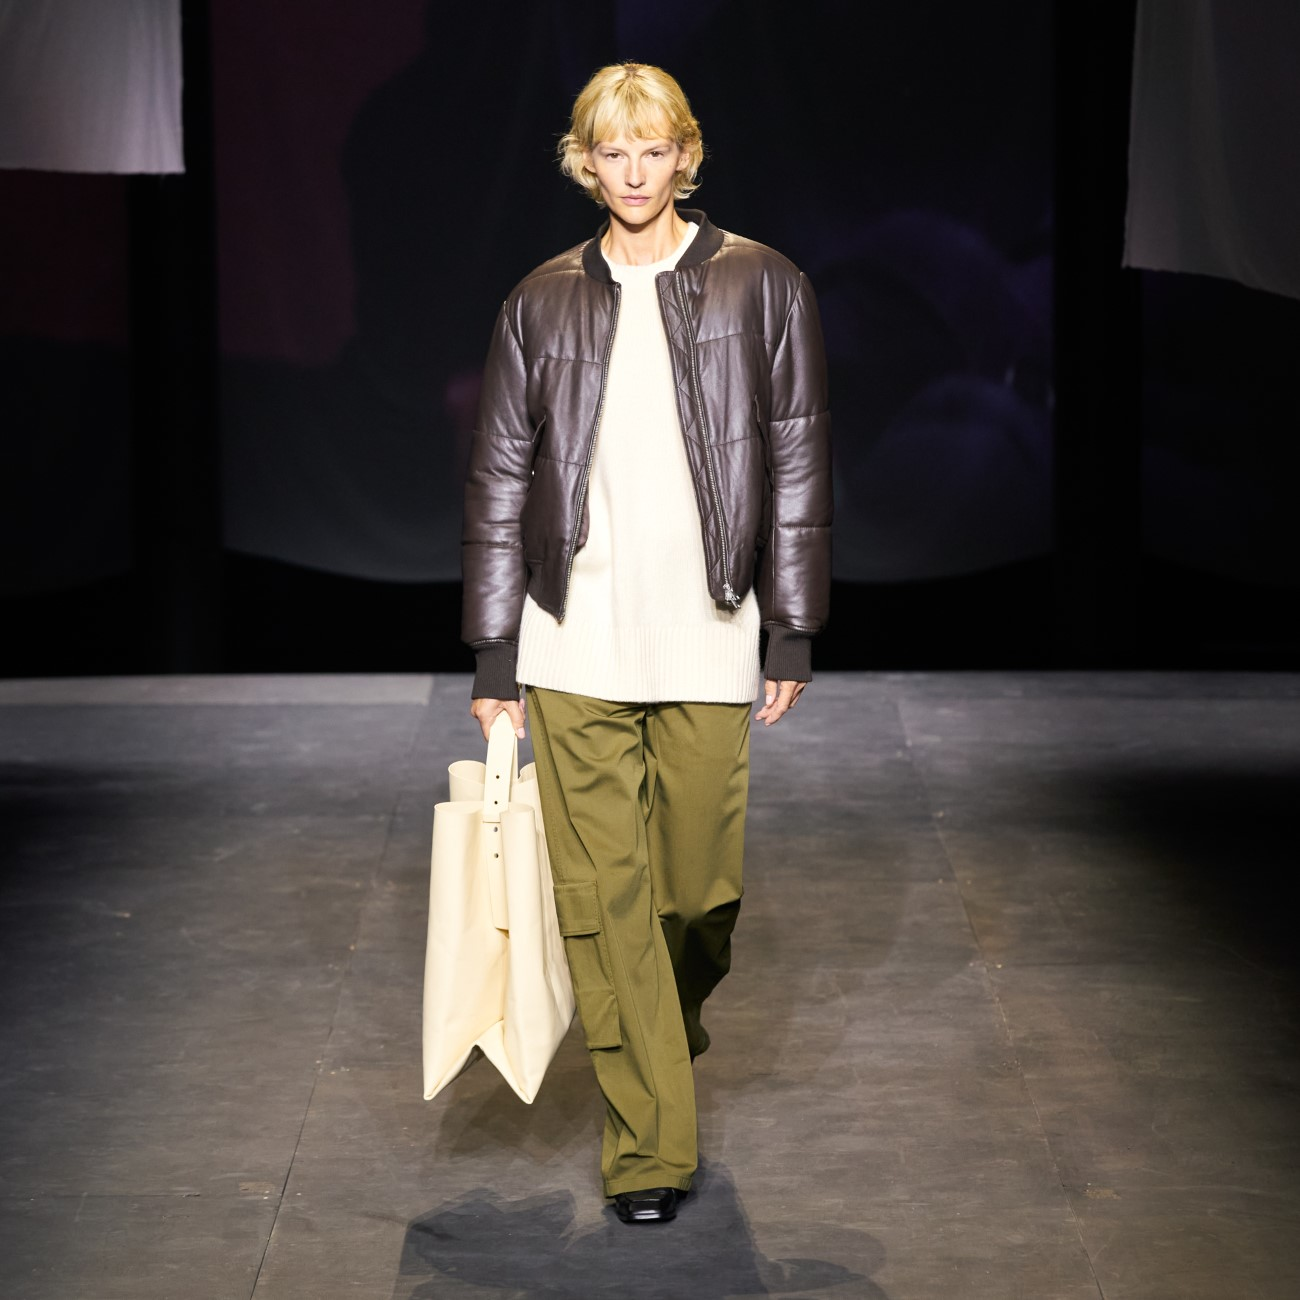 COS - Automne-Hiver 2021-2022 - London Fashion Week